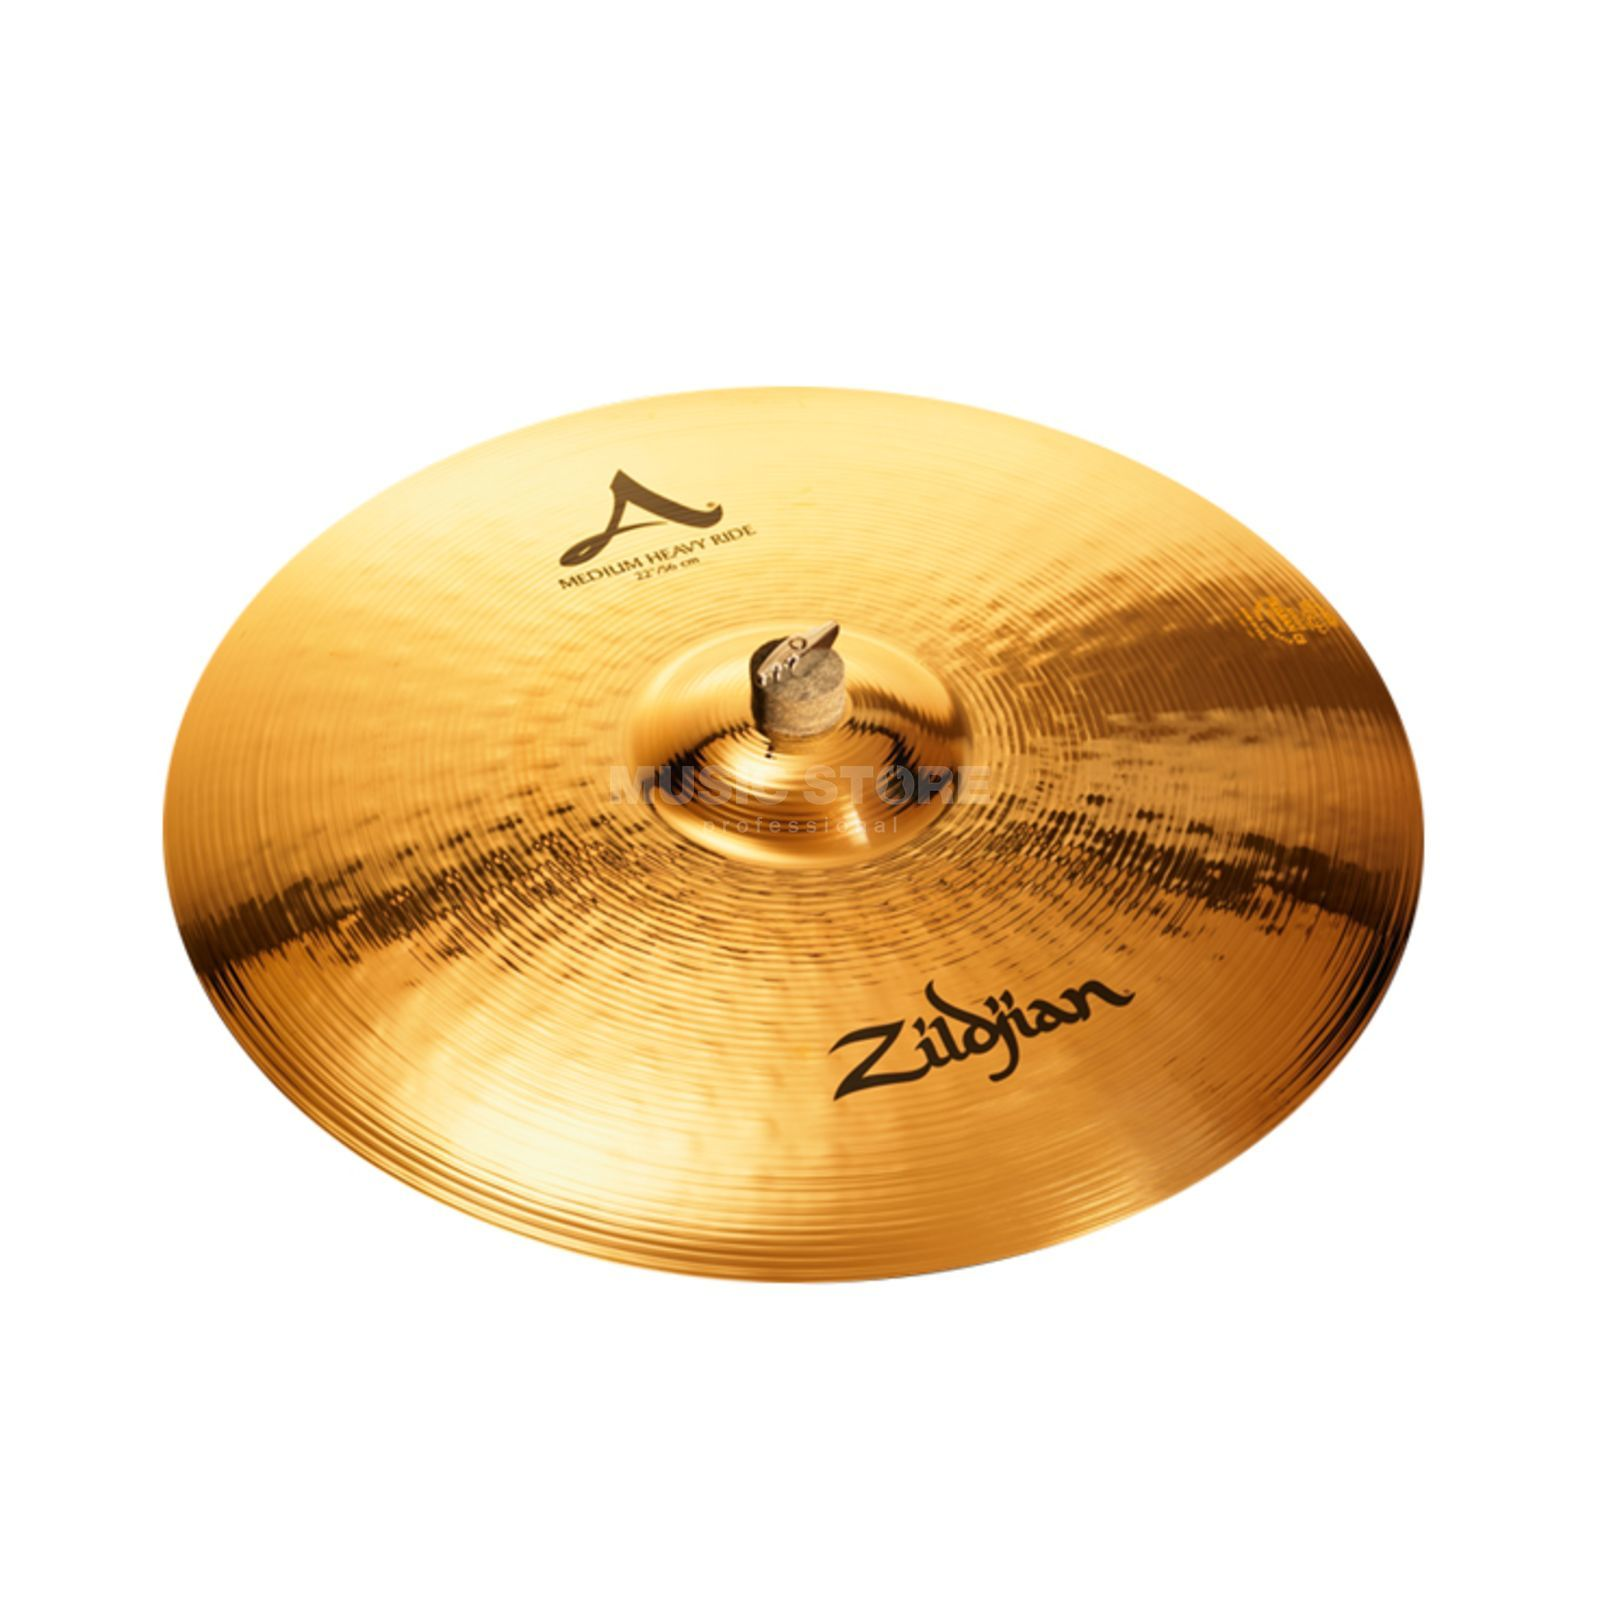 "Zildjian A' Zildjian Medium Heavy Ride 22"" Produktbild"